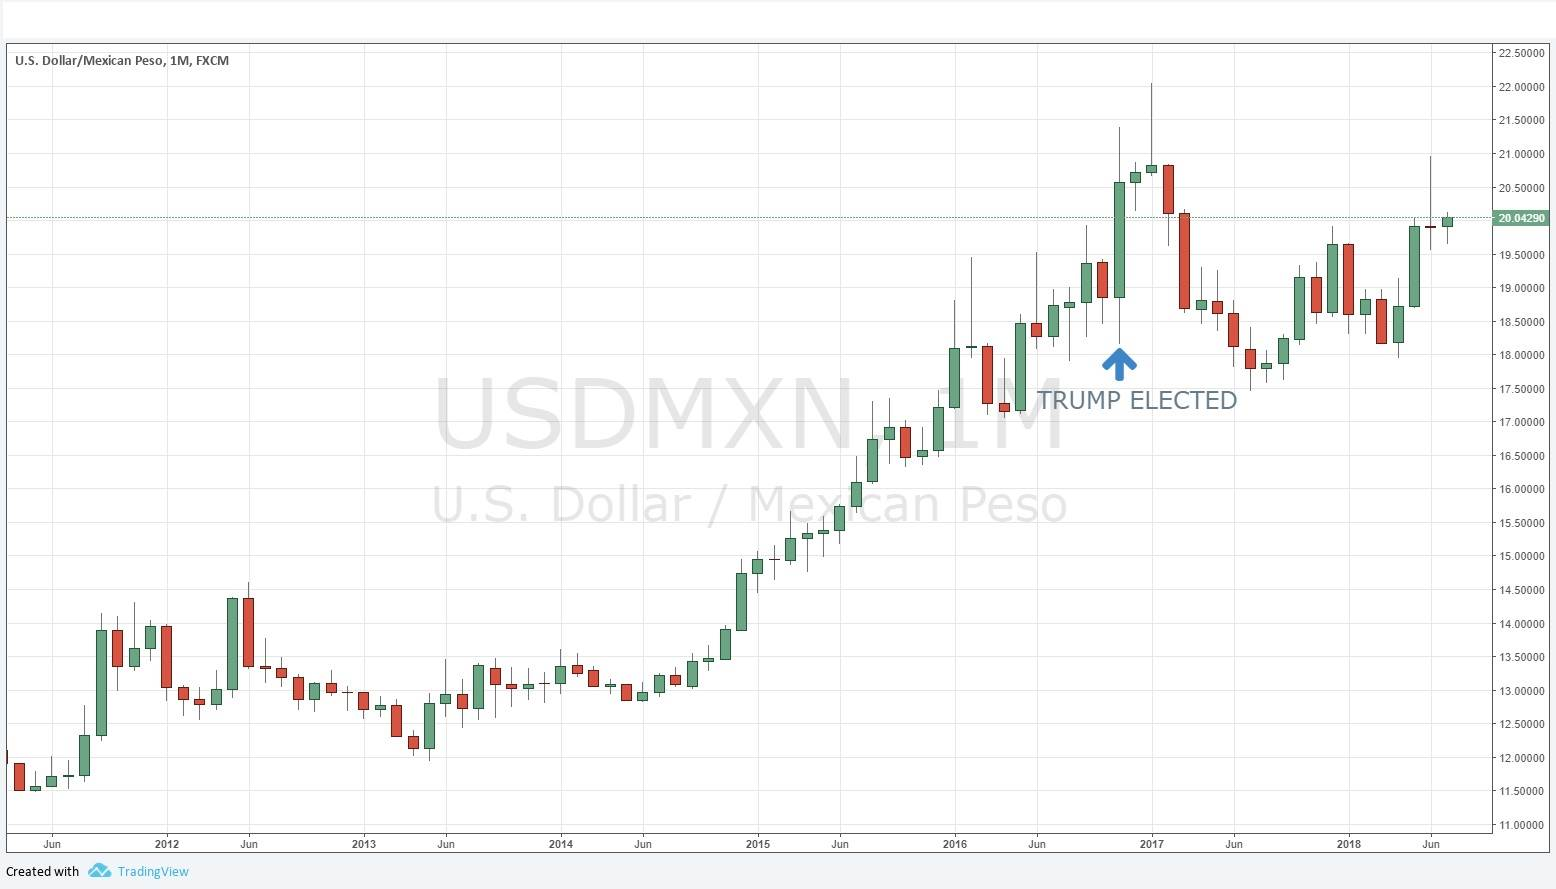 Mexico Turns Left | DailyForex – Mint Dynasty